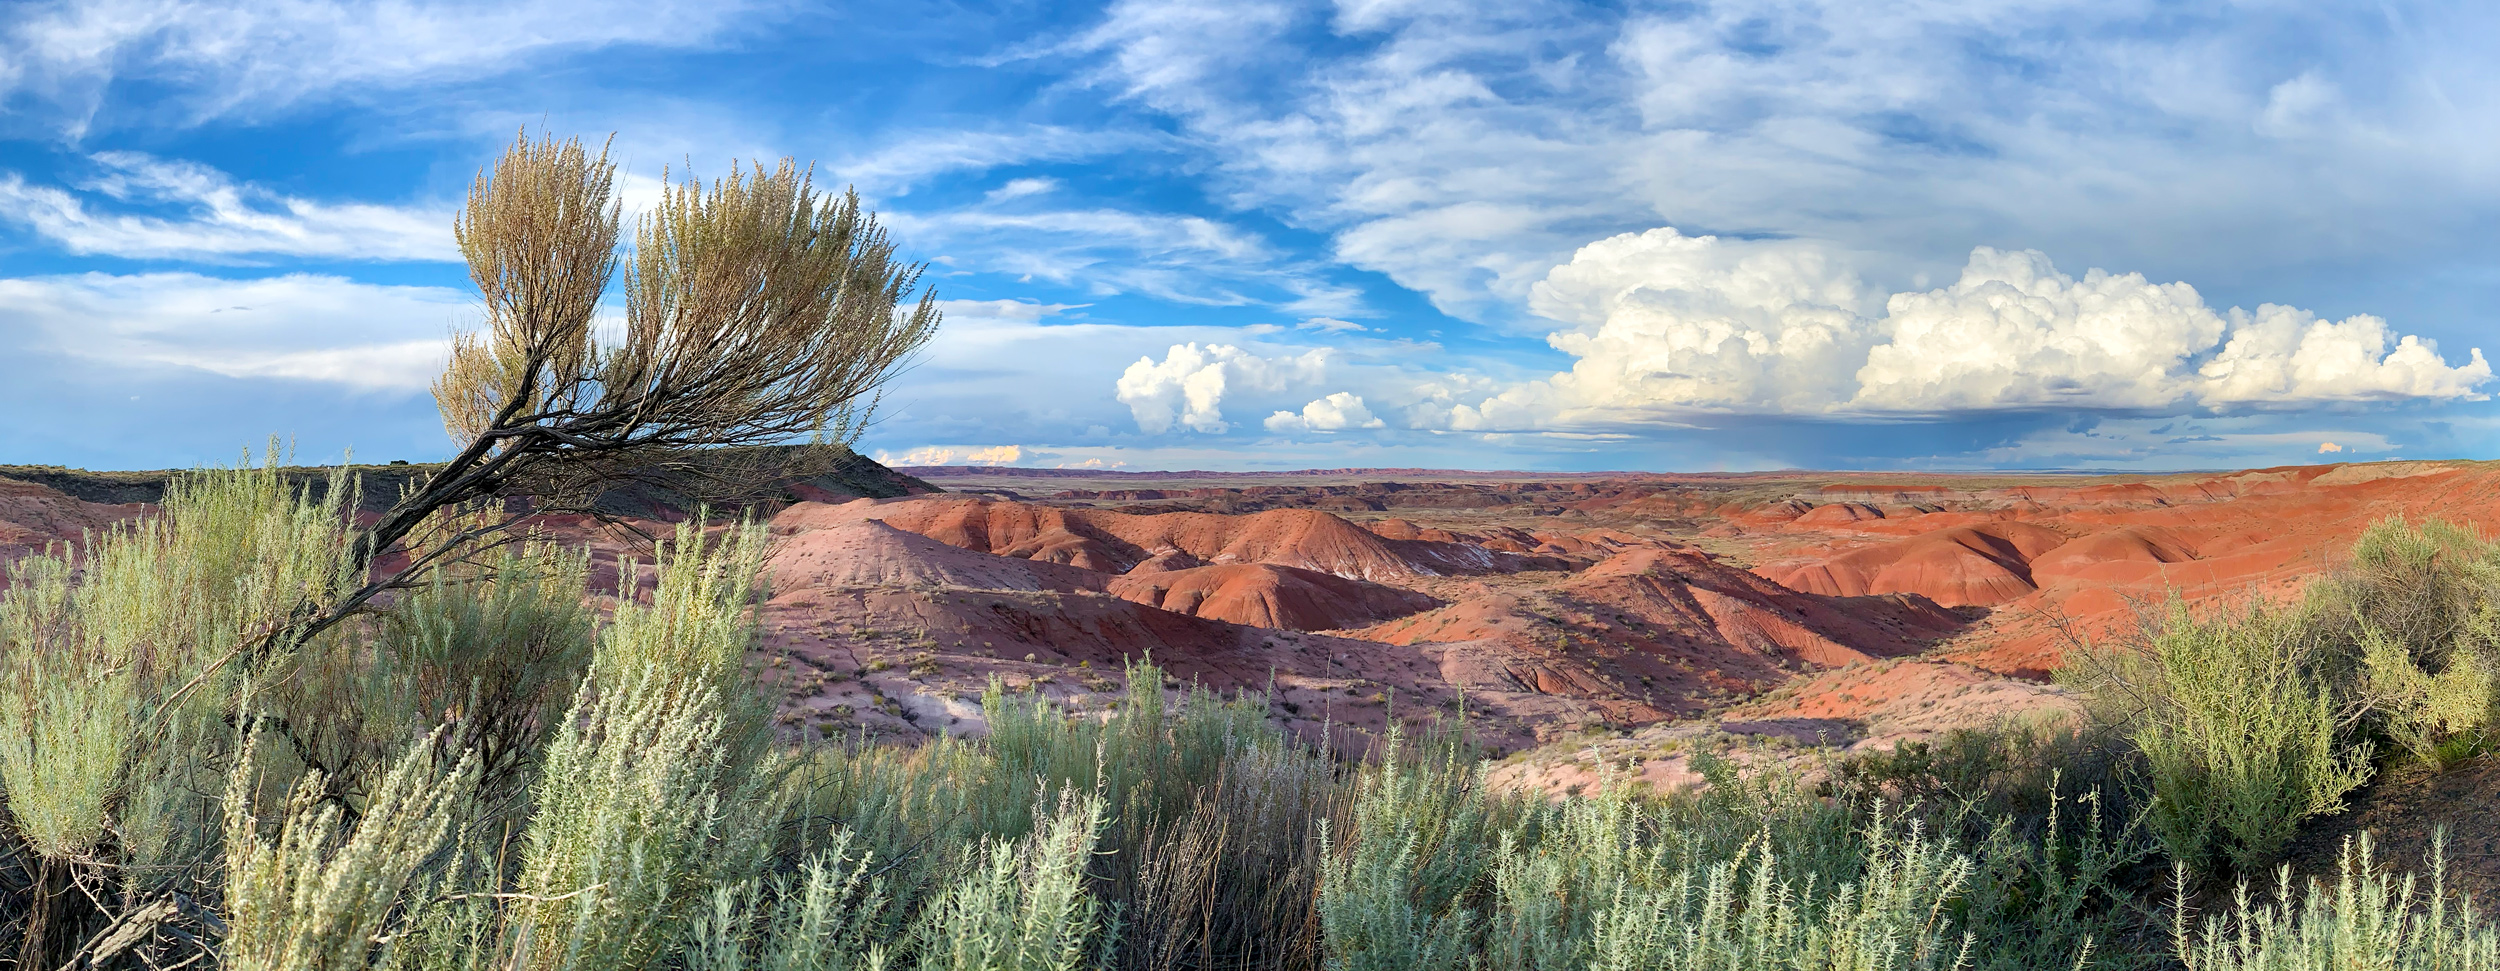 Shot on iPhone XR in Pano Mode w/ Smart HDR. Petrified Forest National Park.